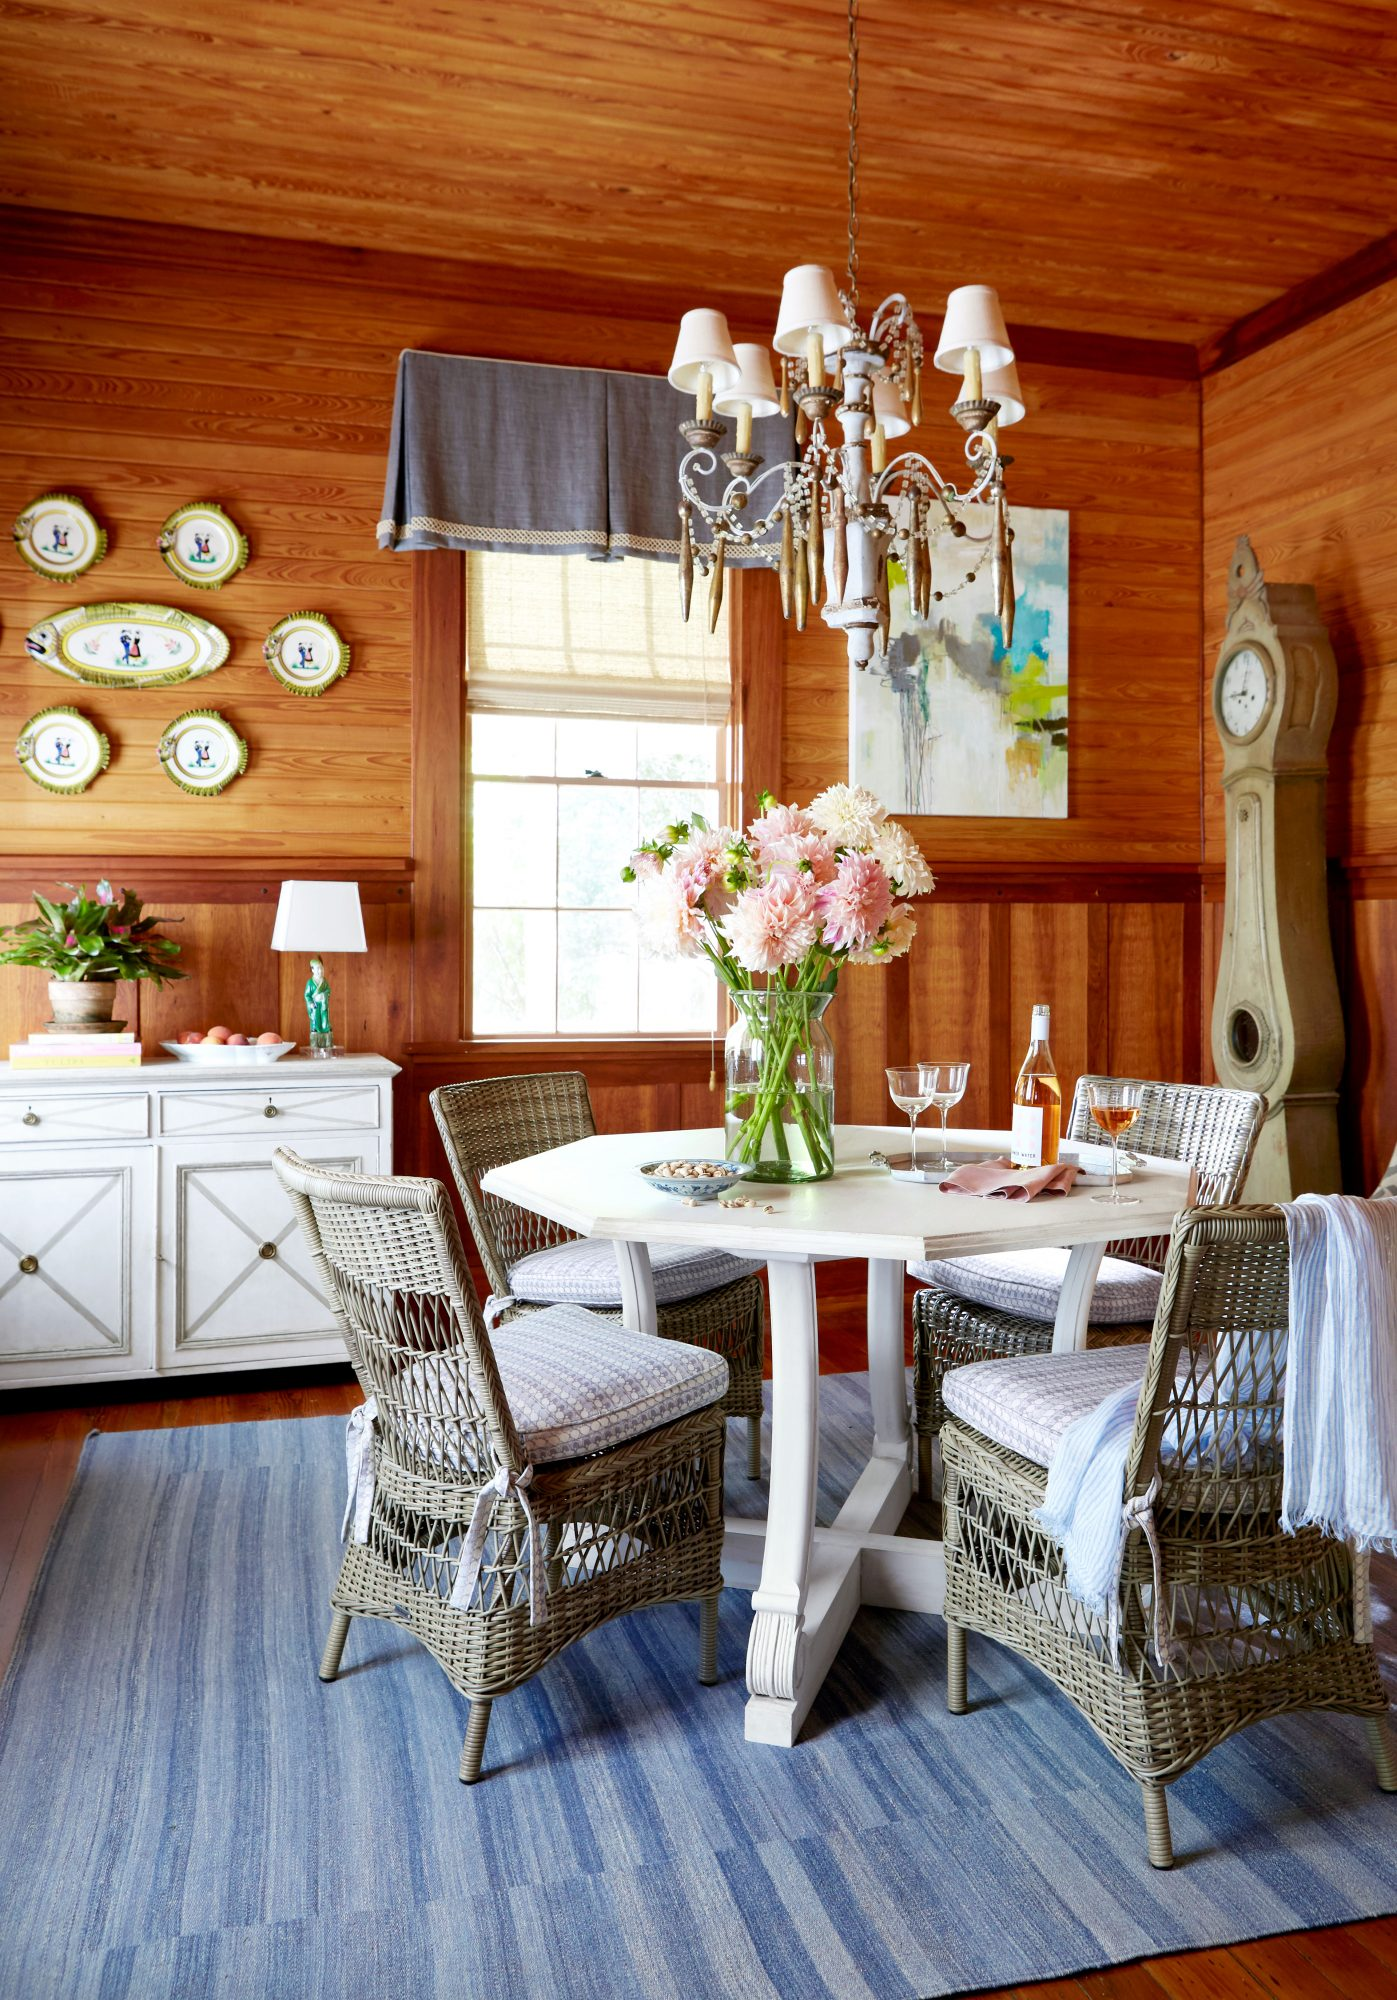 Wood-Clad Dining Room with Round White Table and Wicker Chairs